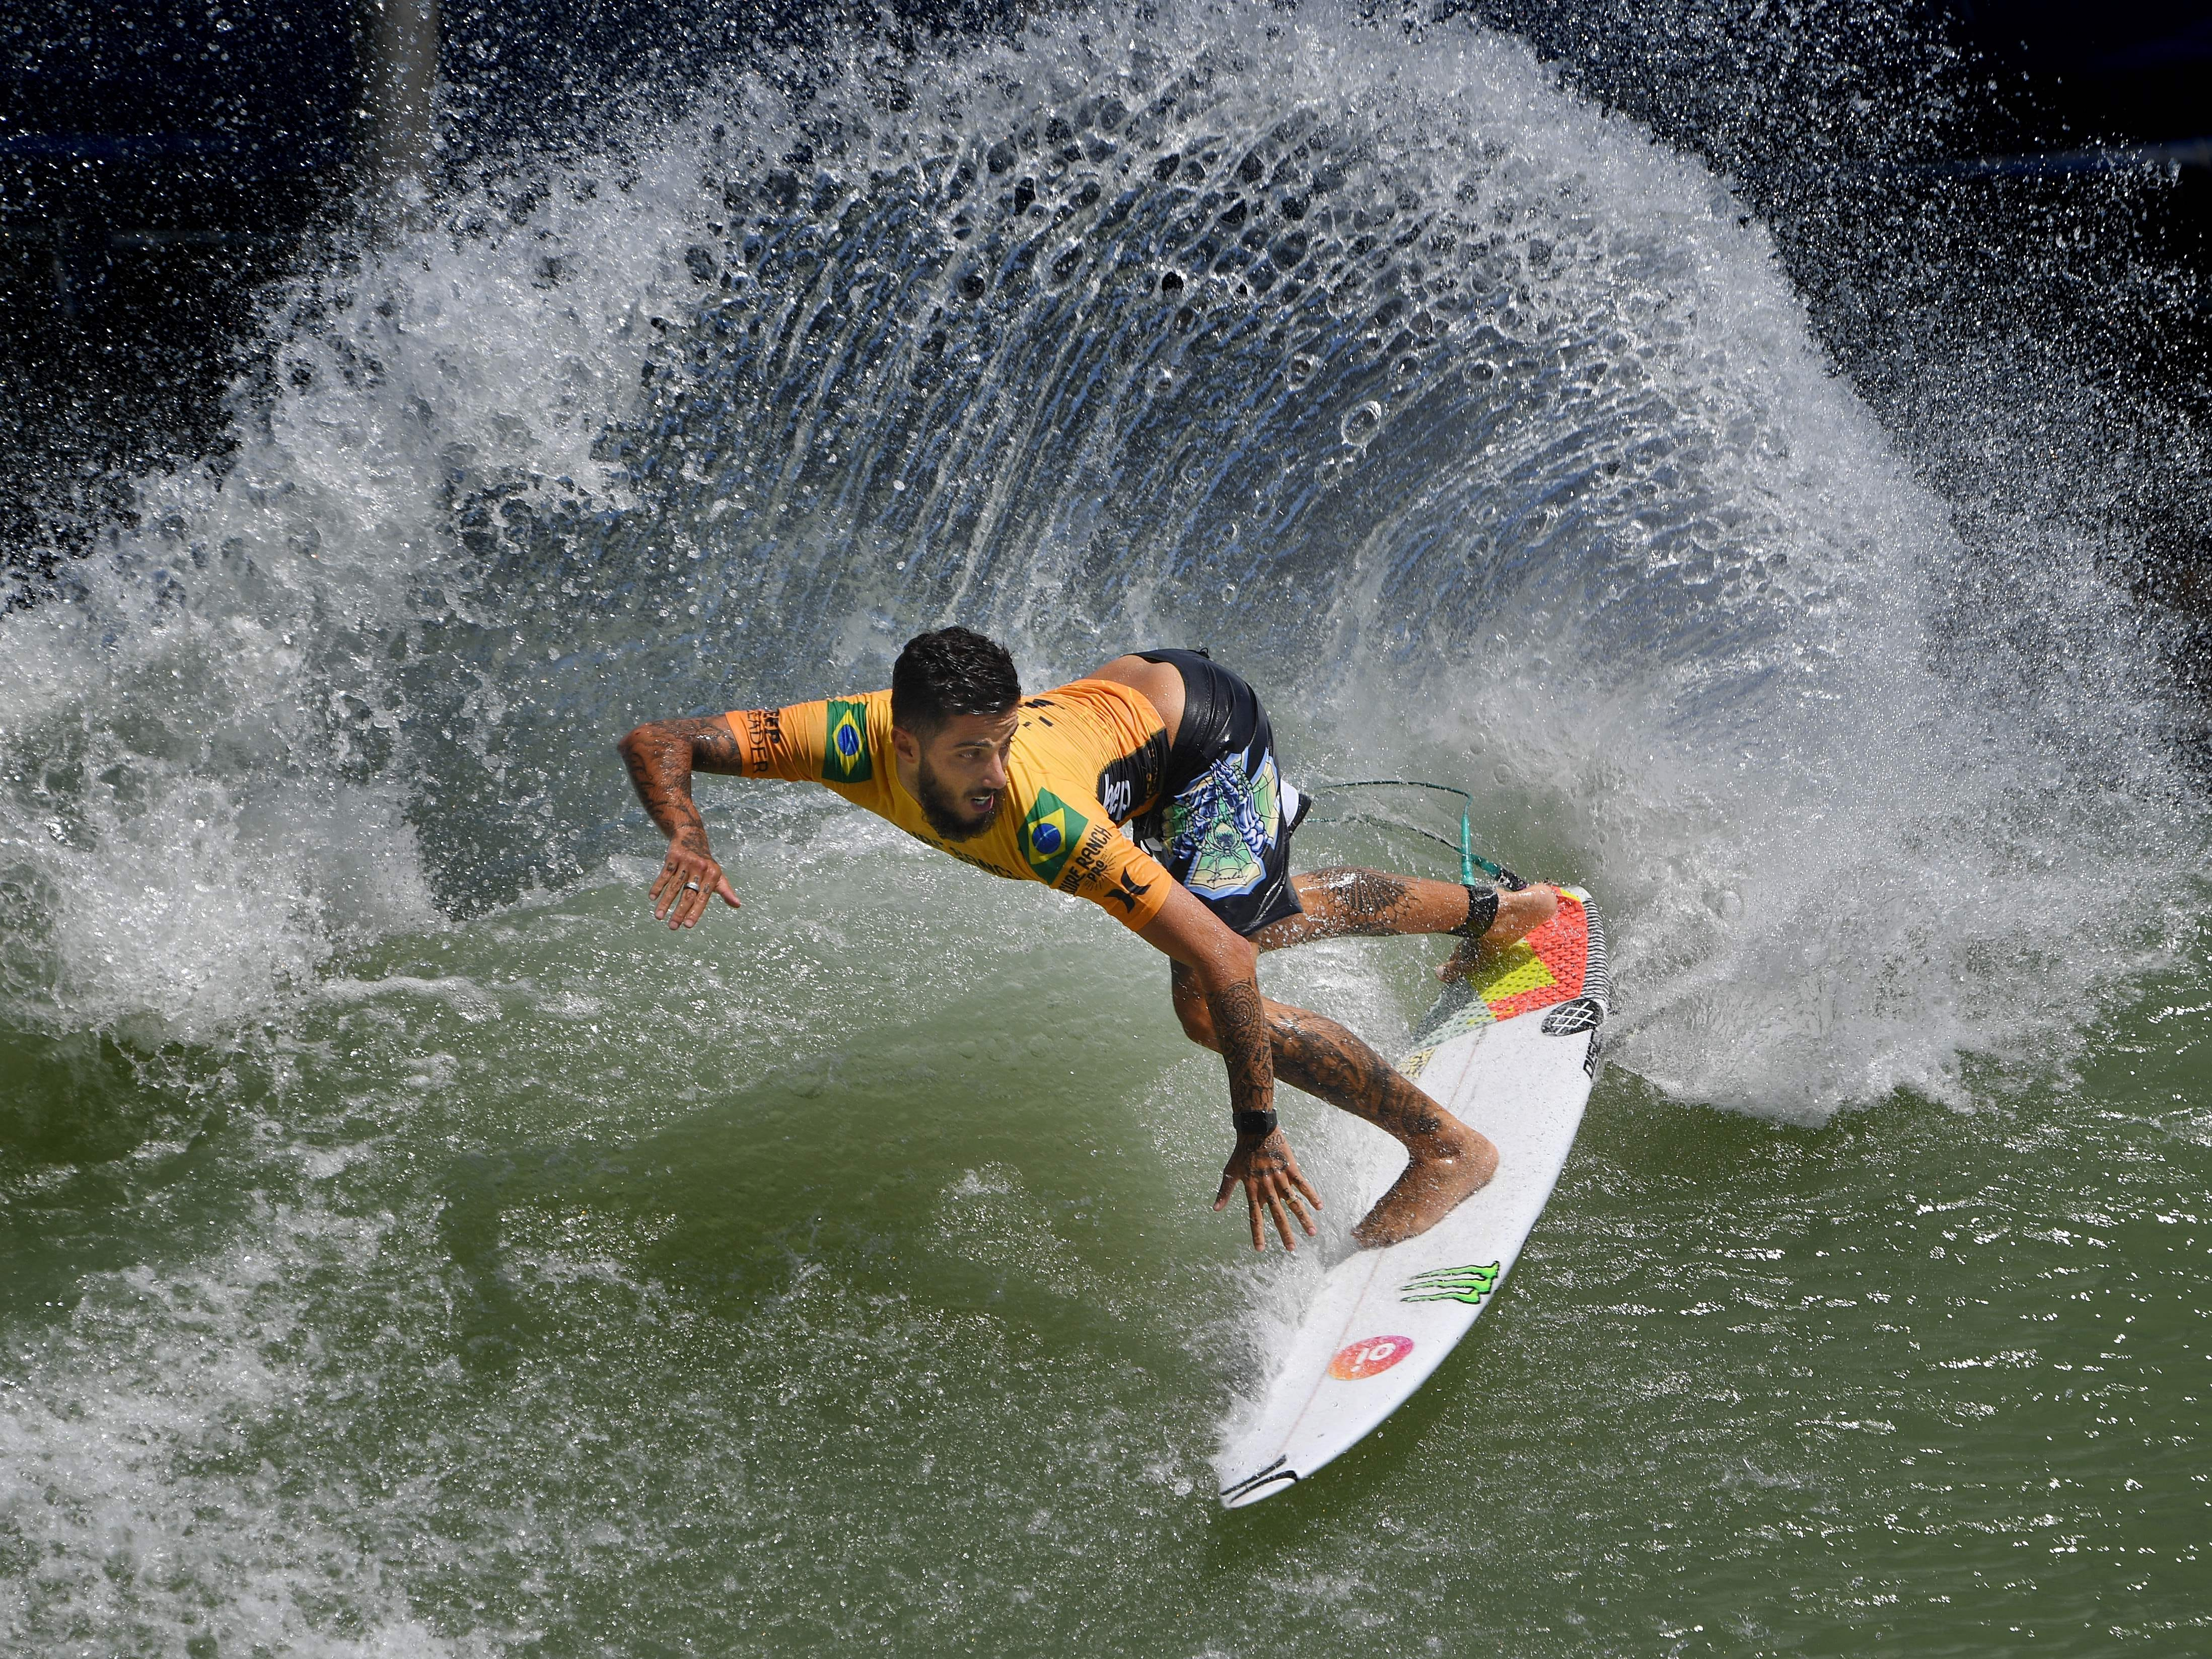 Filipe Toledo of Brazil surfs off the lip during the qualifying round of the WSL Surf Ranch Pro, at the Kelly Slater Surf Ranch in Lemoore, California on September 8, 2018.